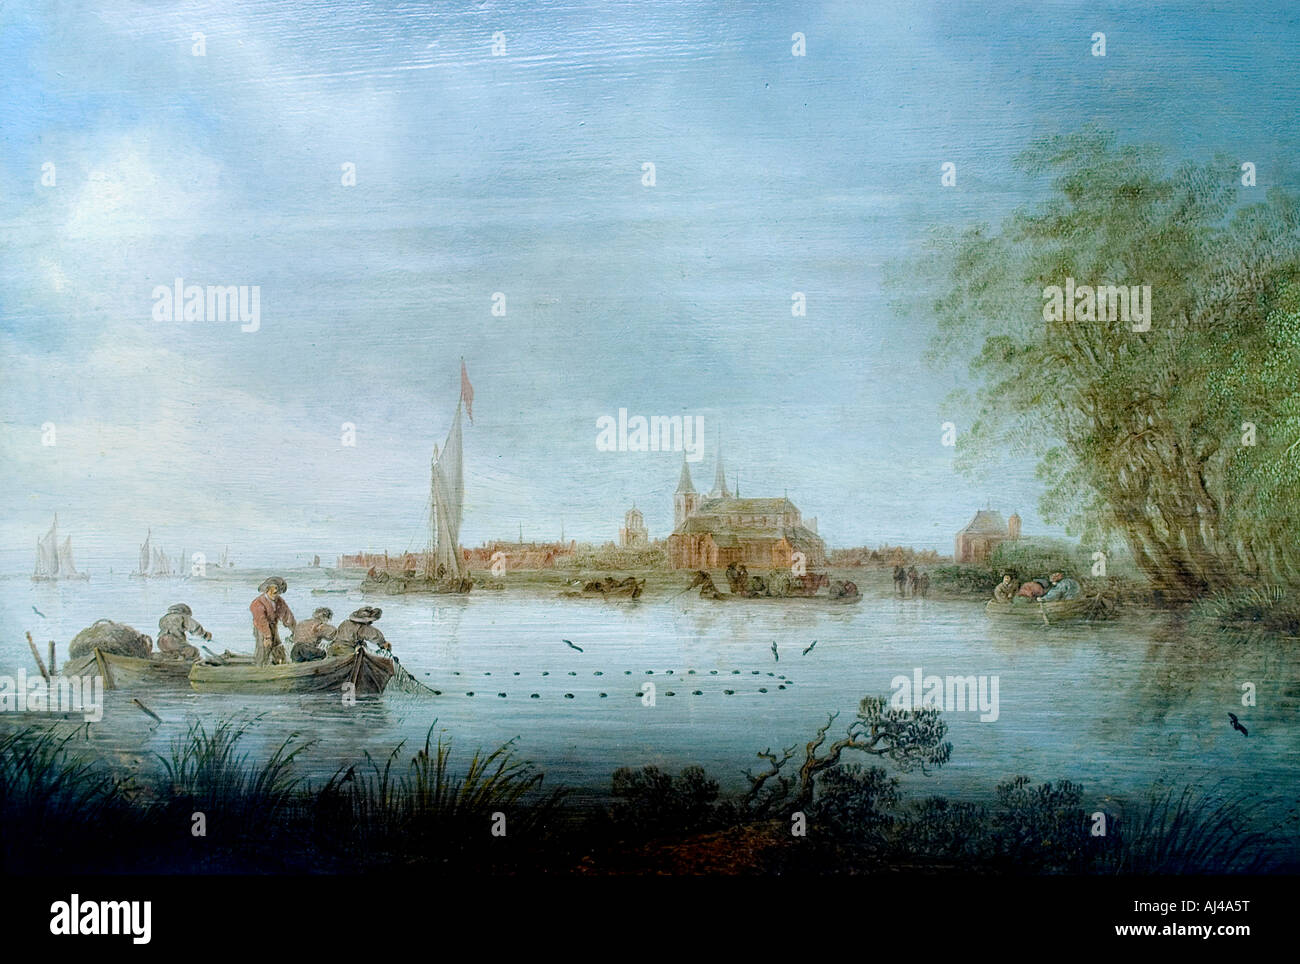 Salomon Jacobsz van Ruysdael 1600 - 1670  River Scene near Deventer 1641 Netherlands Stock Photo